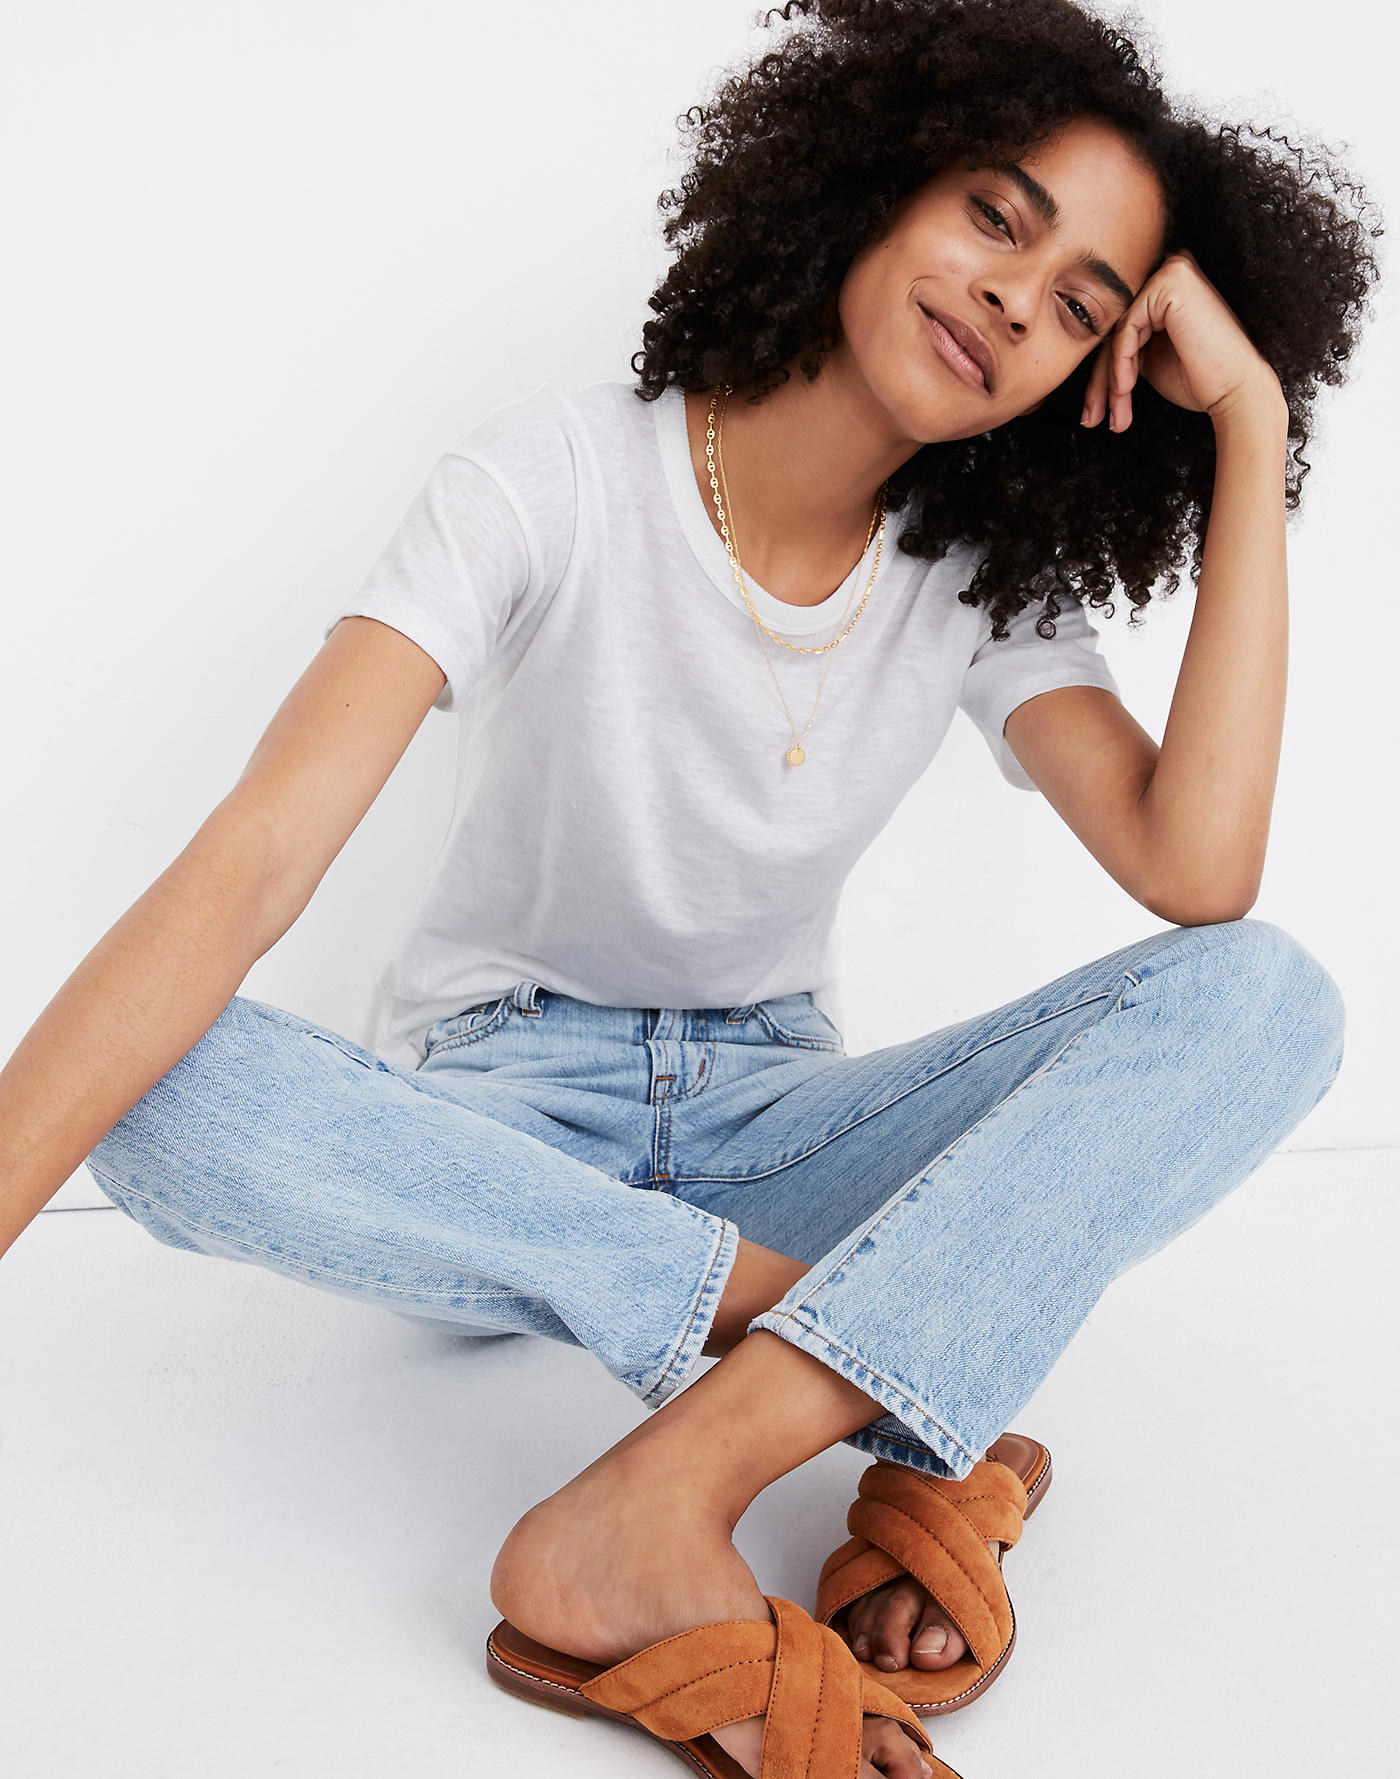 A model wearing the textured tee in white